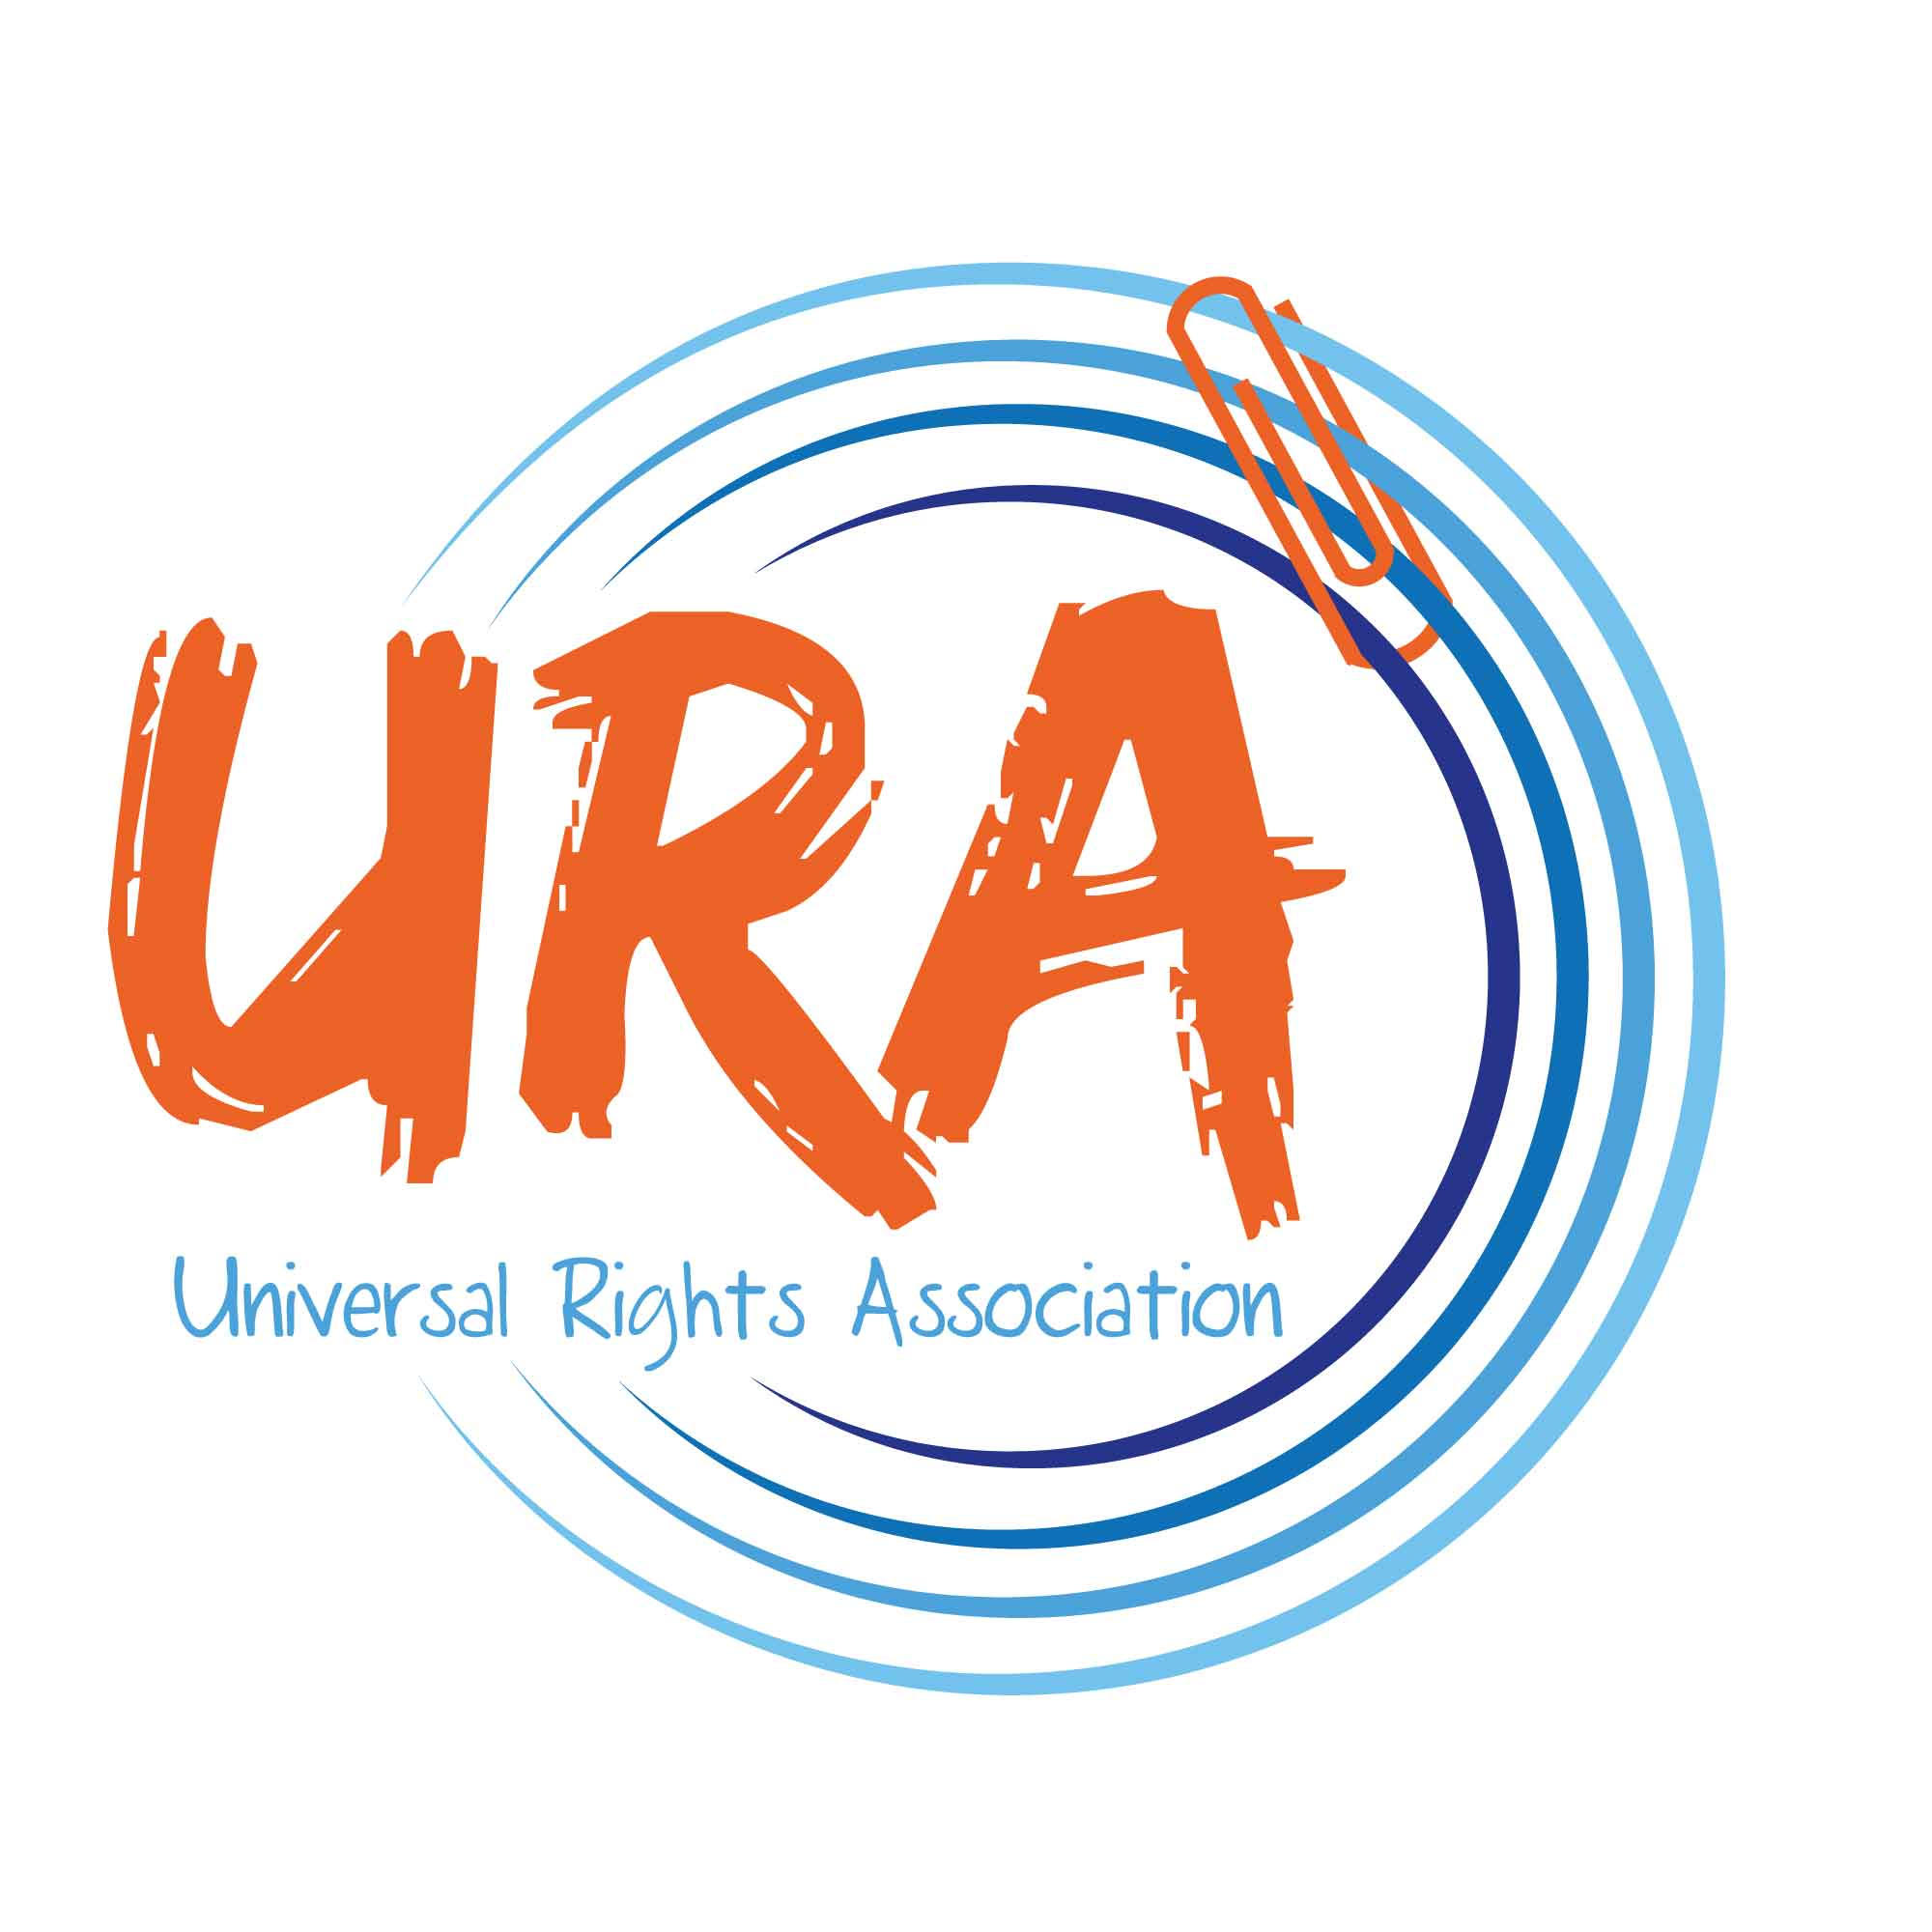 UNIVERSAL RIGHTS ASSOCIATION (URA)